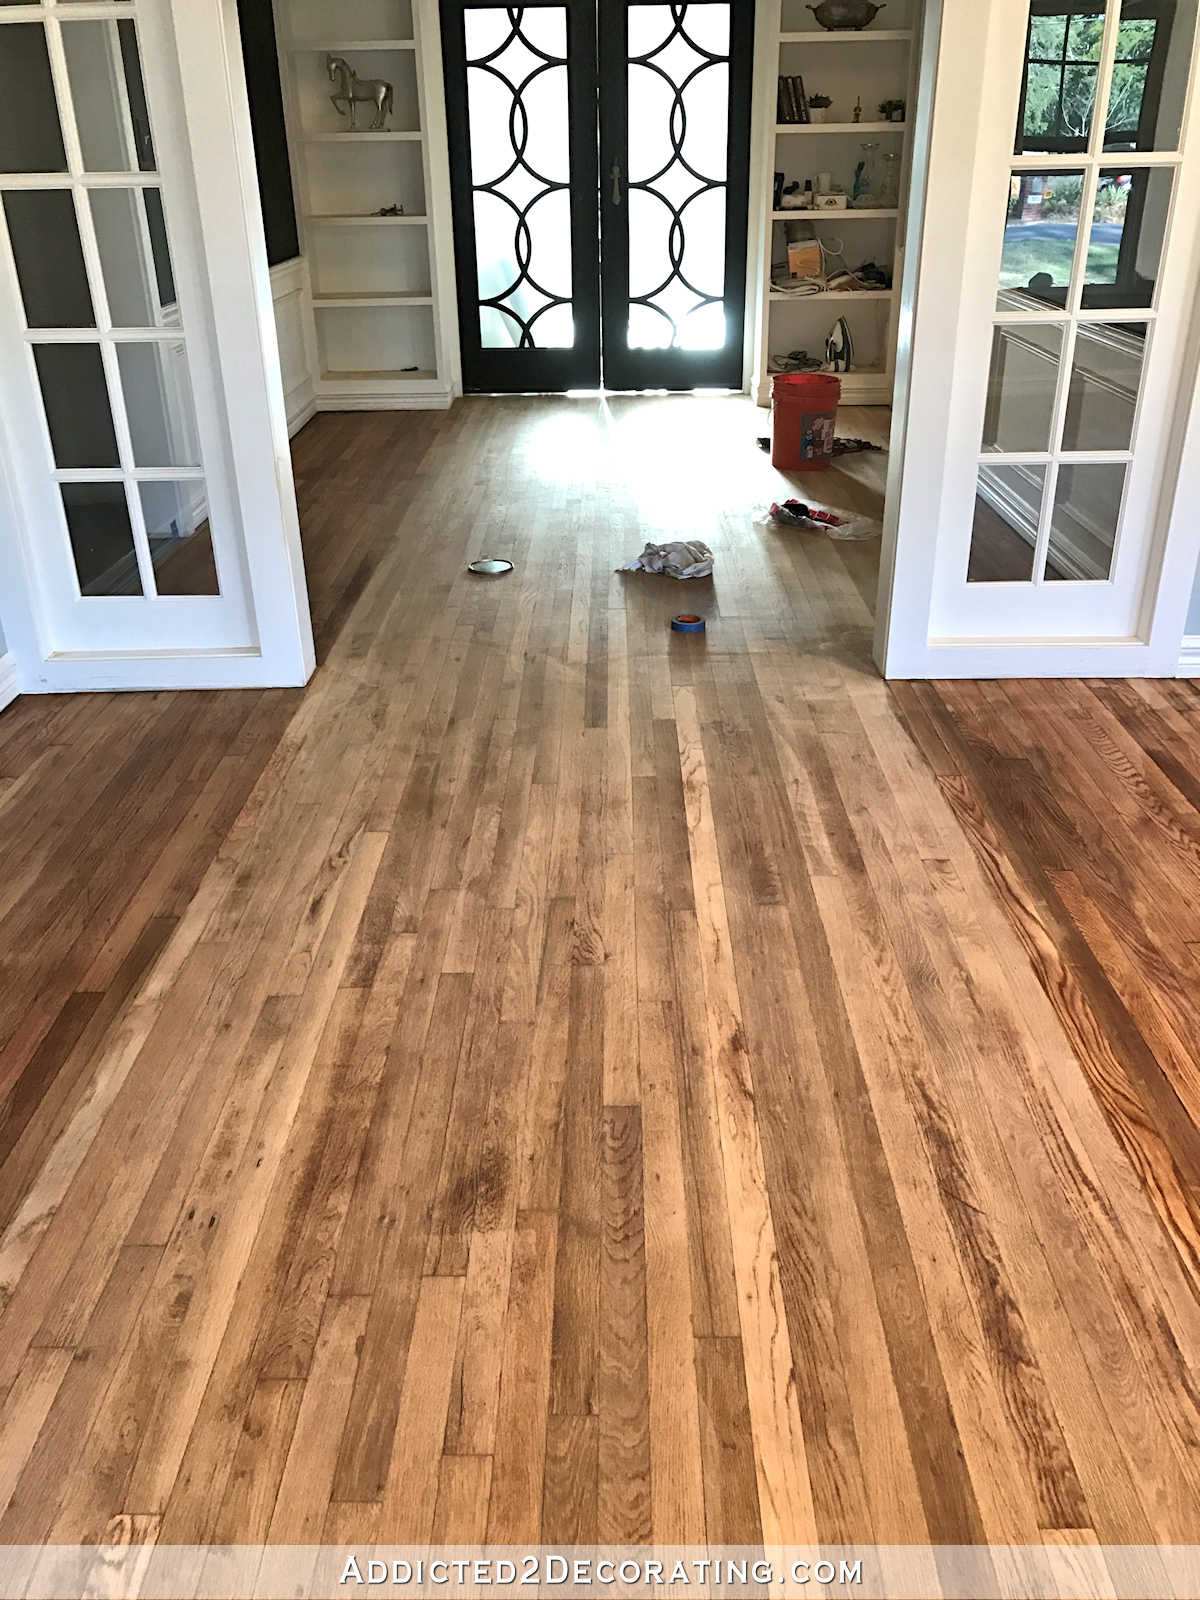 cost per foot to refinish hardwood floors of how much to refinish wood floors adventures in staining my red oak within how much to refinish wood floors adventures in staining my red oak hardwood floors products